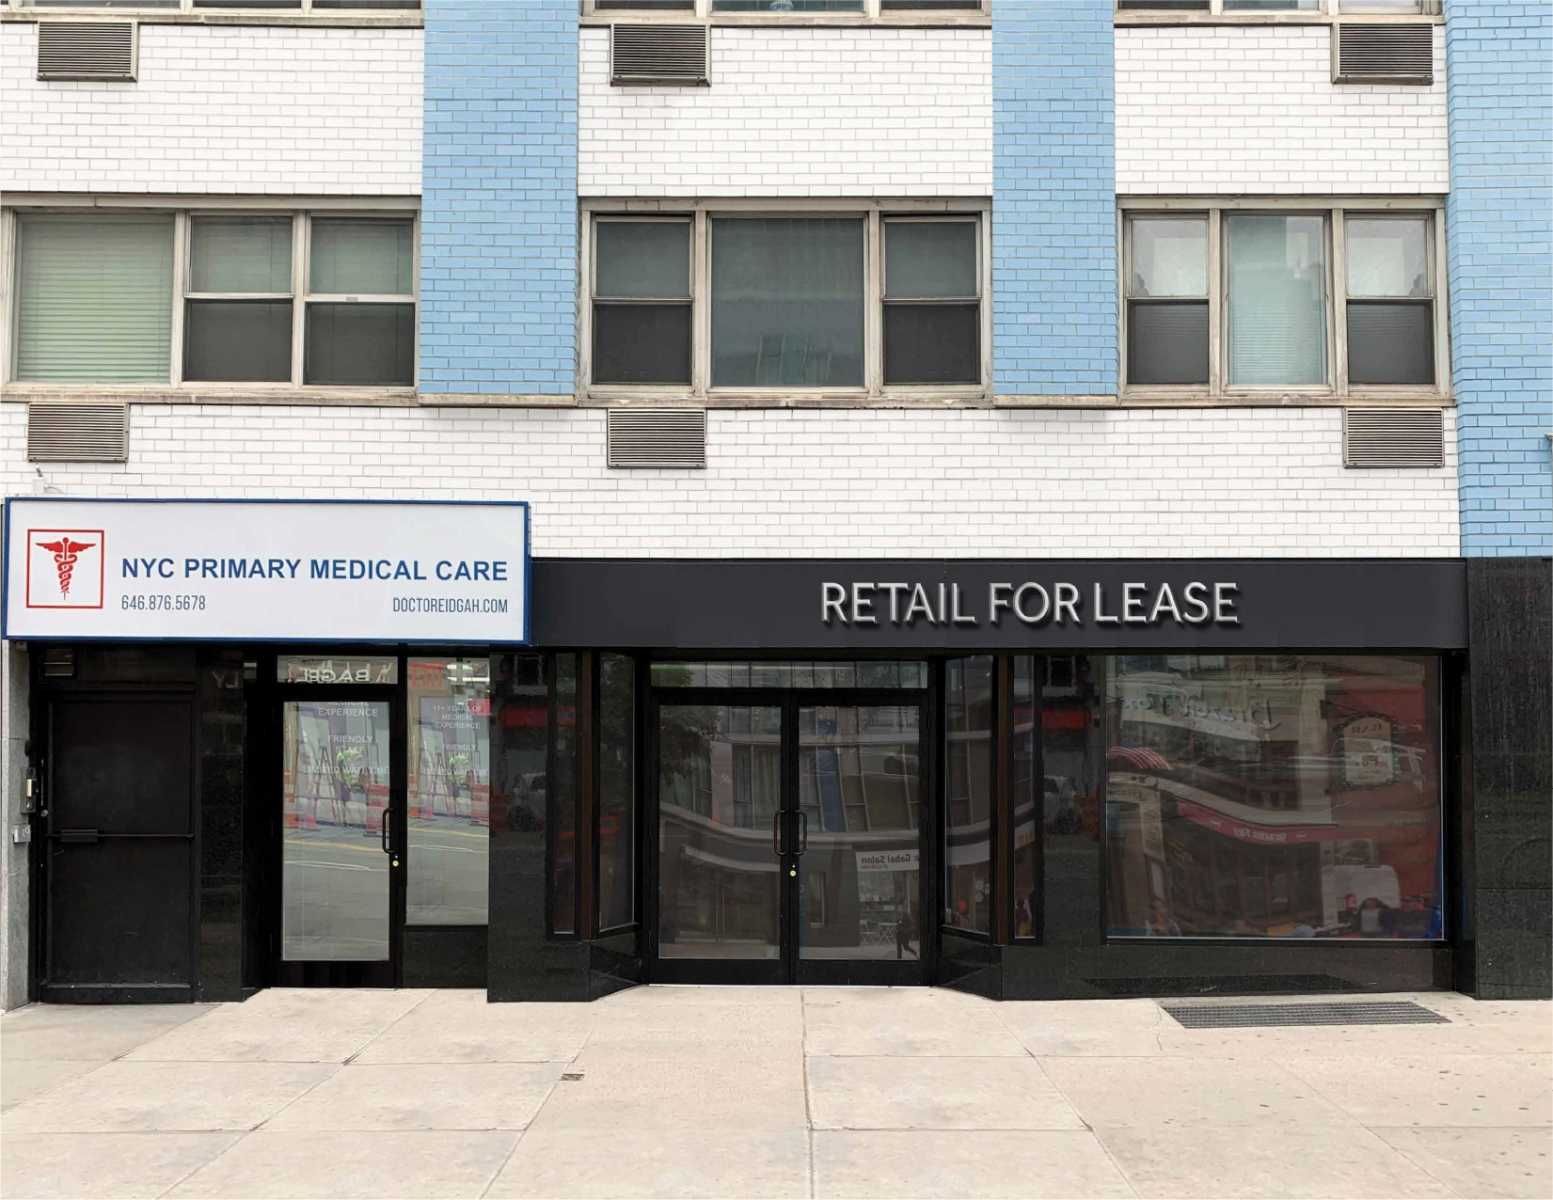 Winick Realty Group Retail Leasing Amp Consulting Jeff Winick